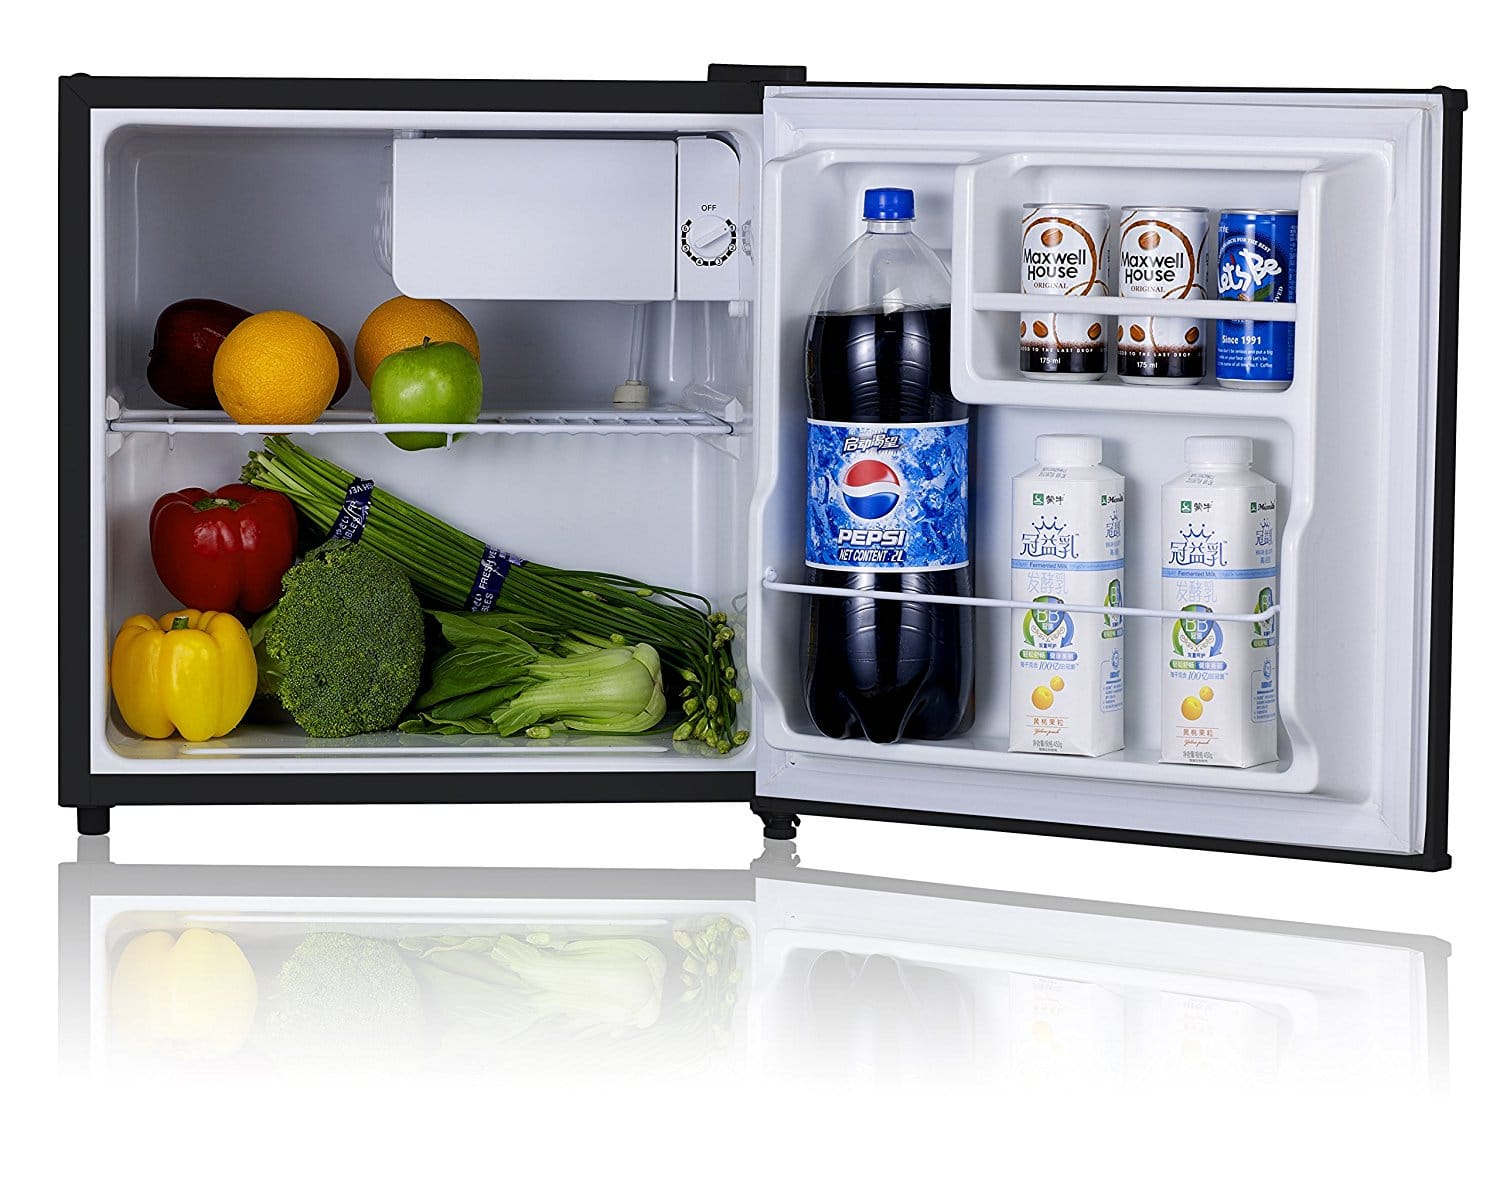 Midea stainless steel compact single reversible door upright freezers - Midea Stainless Steel Compact Single Reversible Door Upright Freezers 20